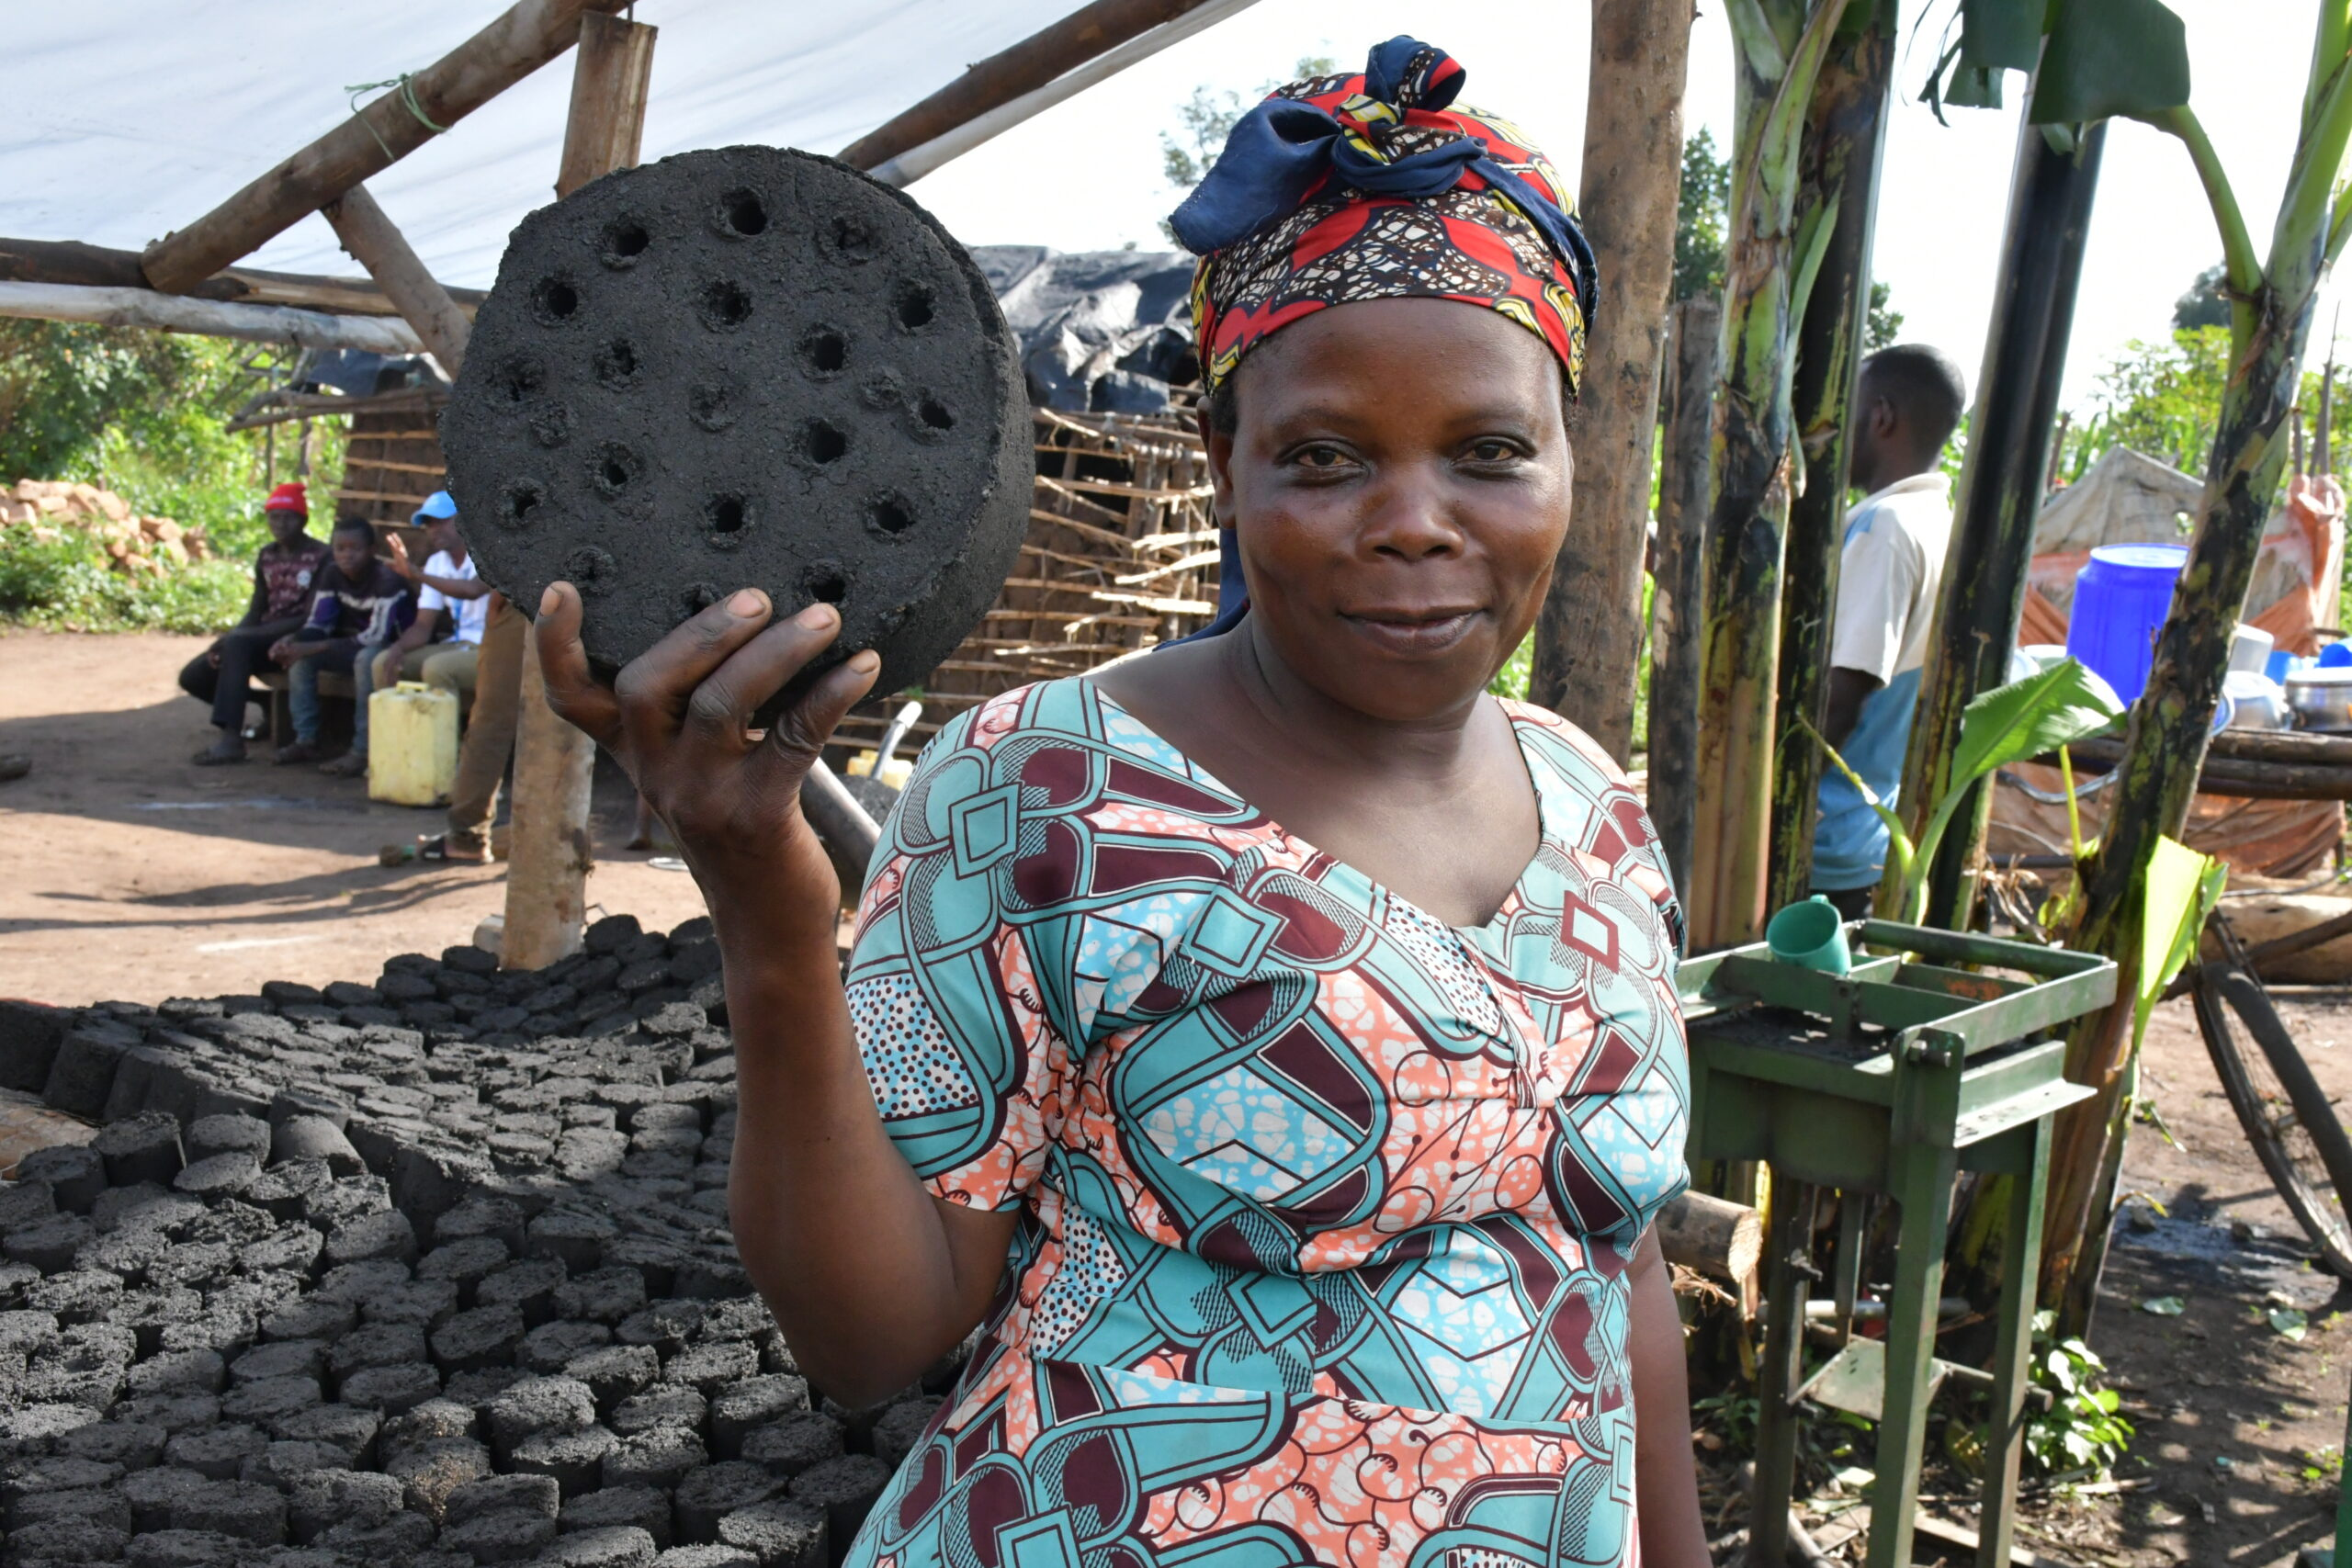 The briquette are made of recyclable agriculture waste and are not only affordable and long lasting but also environment friendly. © UNHCR/Duniya Aslam Khan